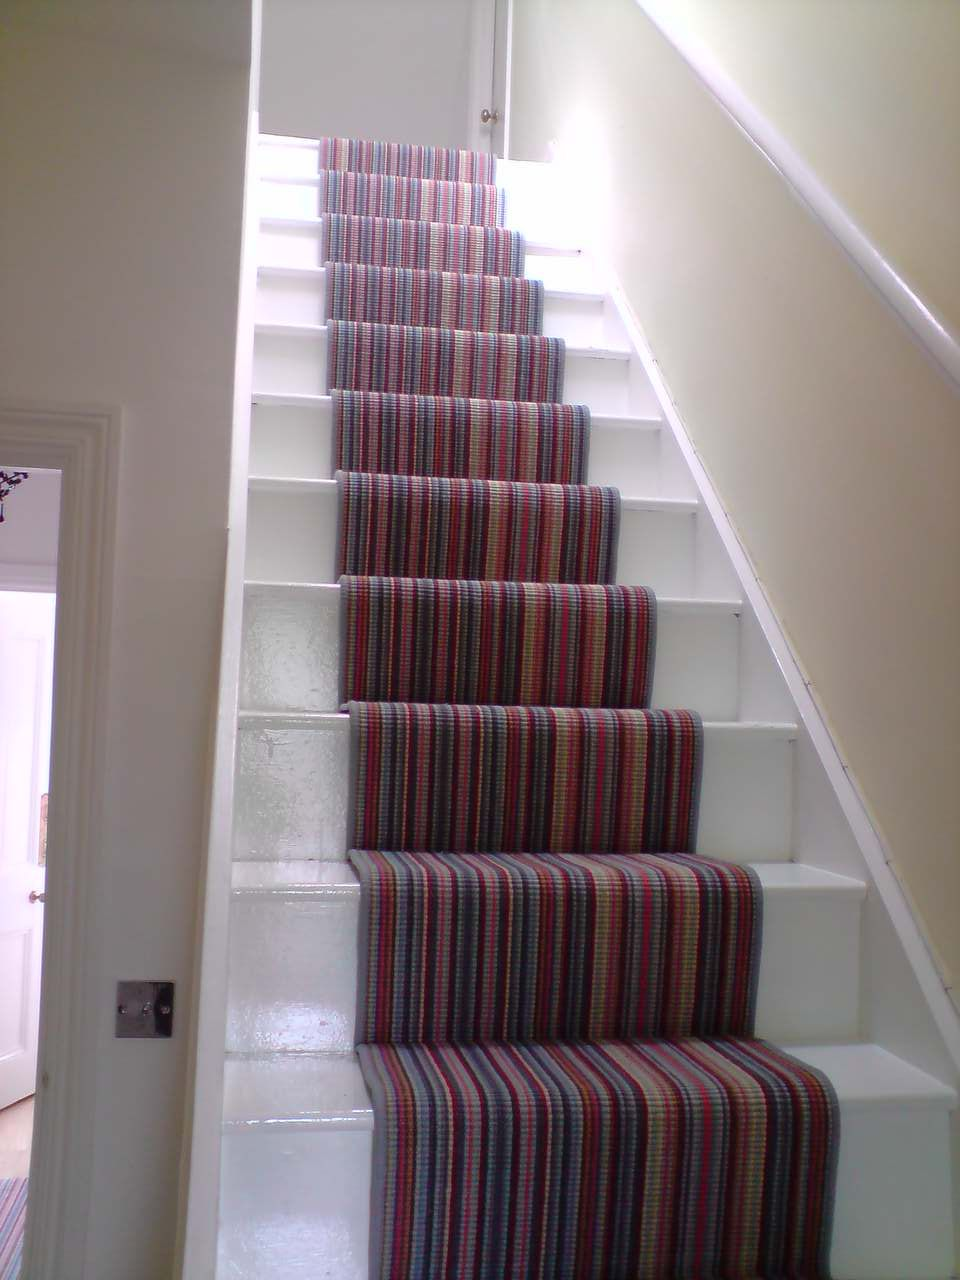 Update Your Flooring With Patterned Carpet Dzine Talk Carpet Stairs Stair Runner Carpet Stairway Carpet